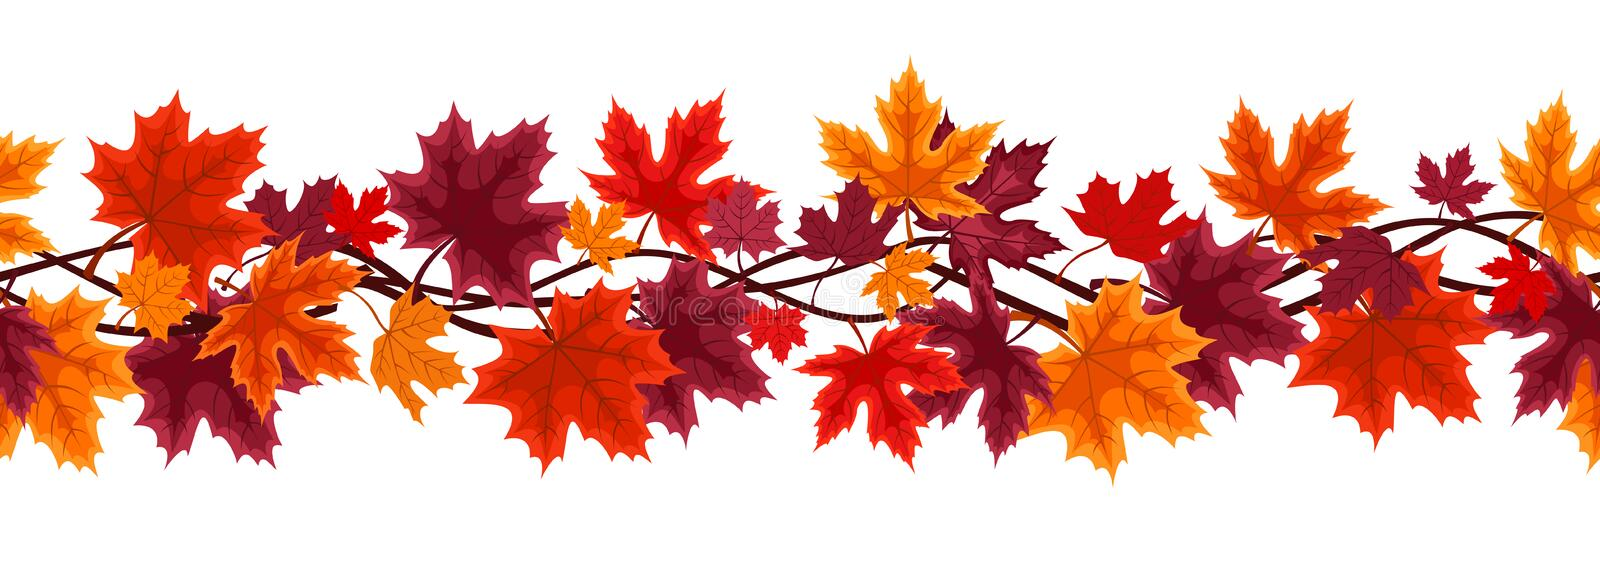 Seamless background with autumn maple leaves. Vector horizontal seamless background with autumn maple leaves of various colors on a white background